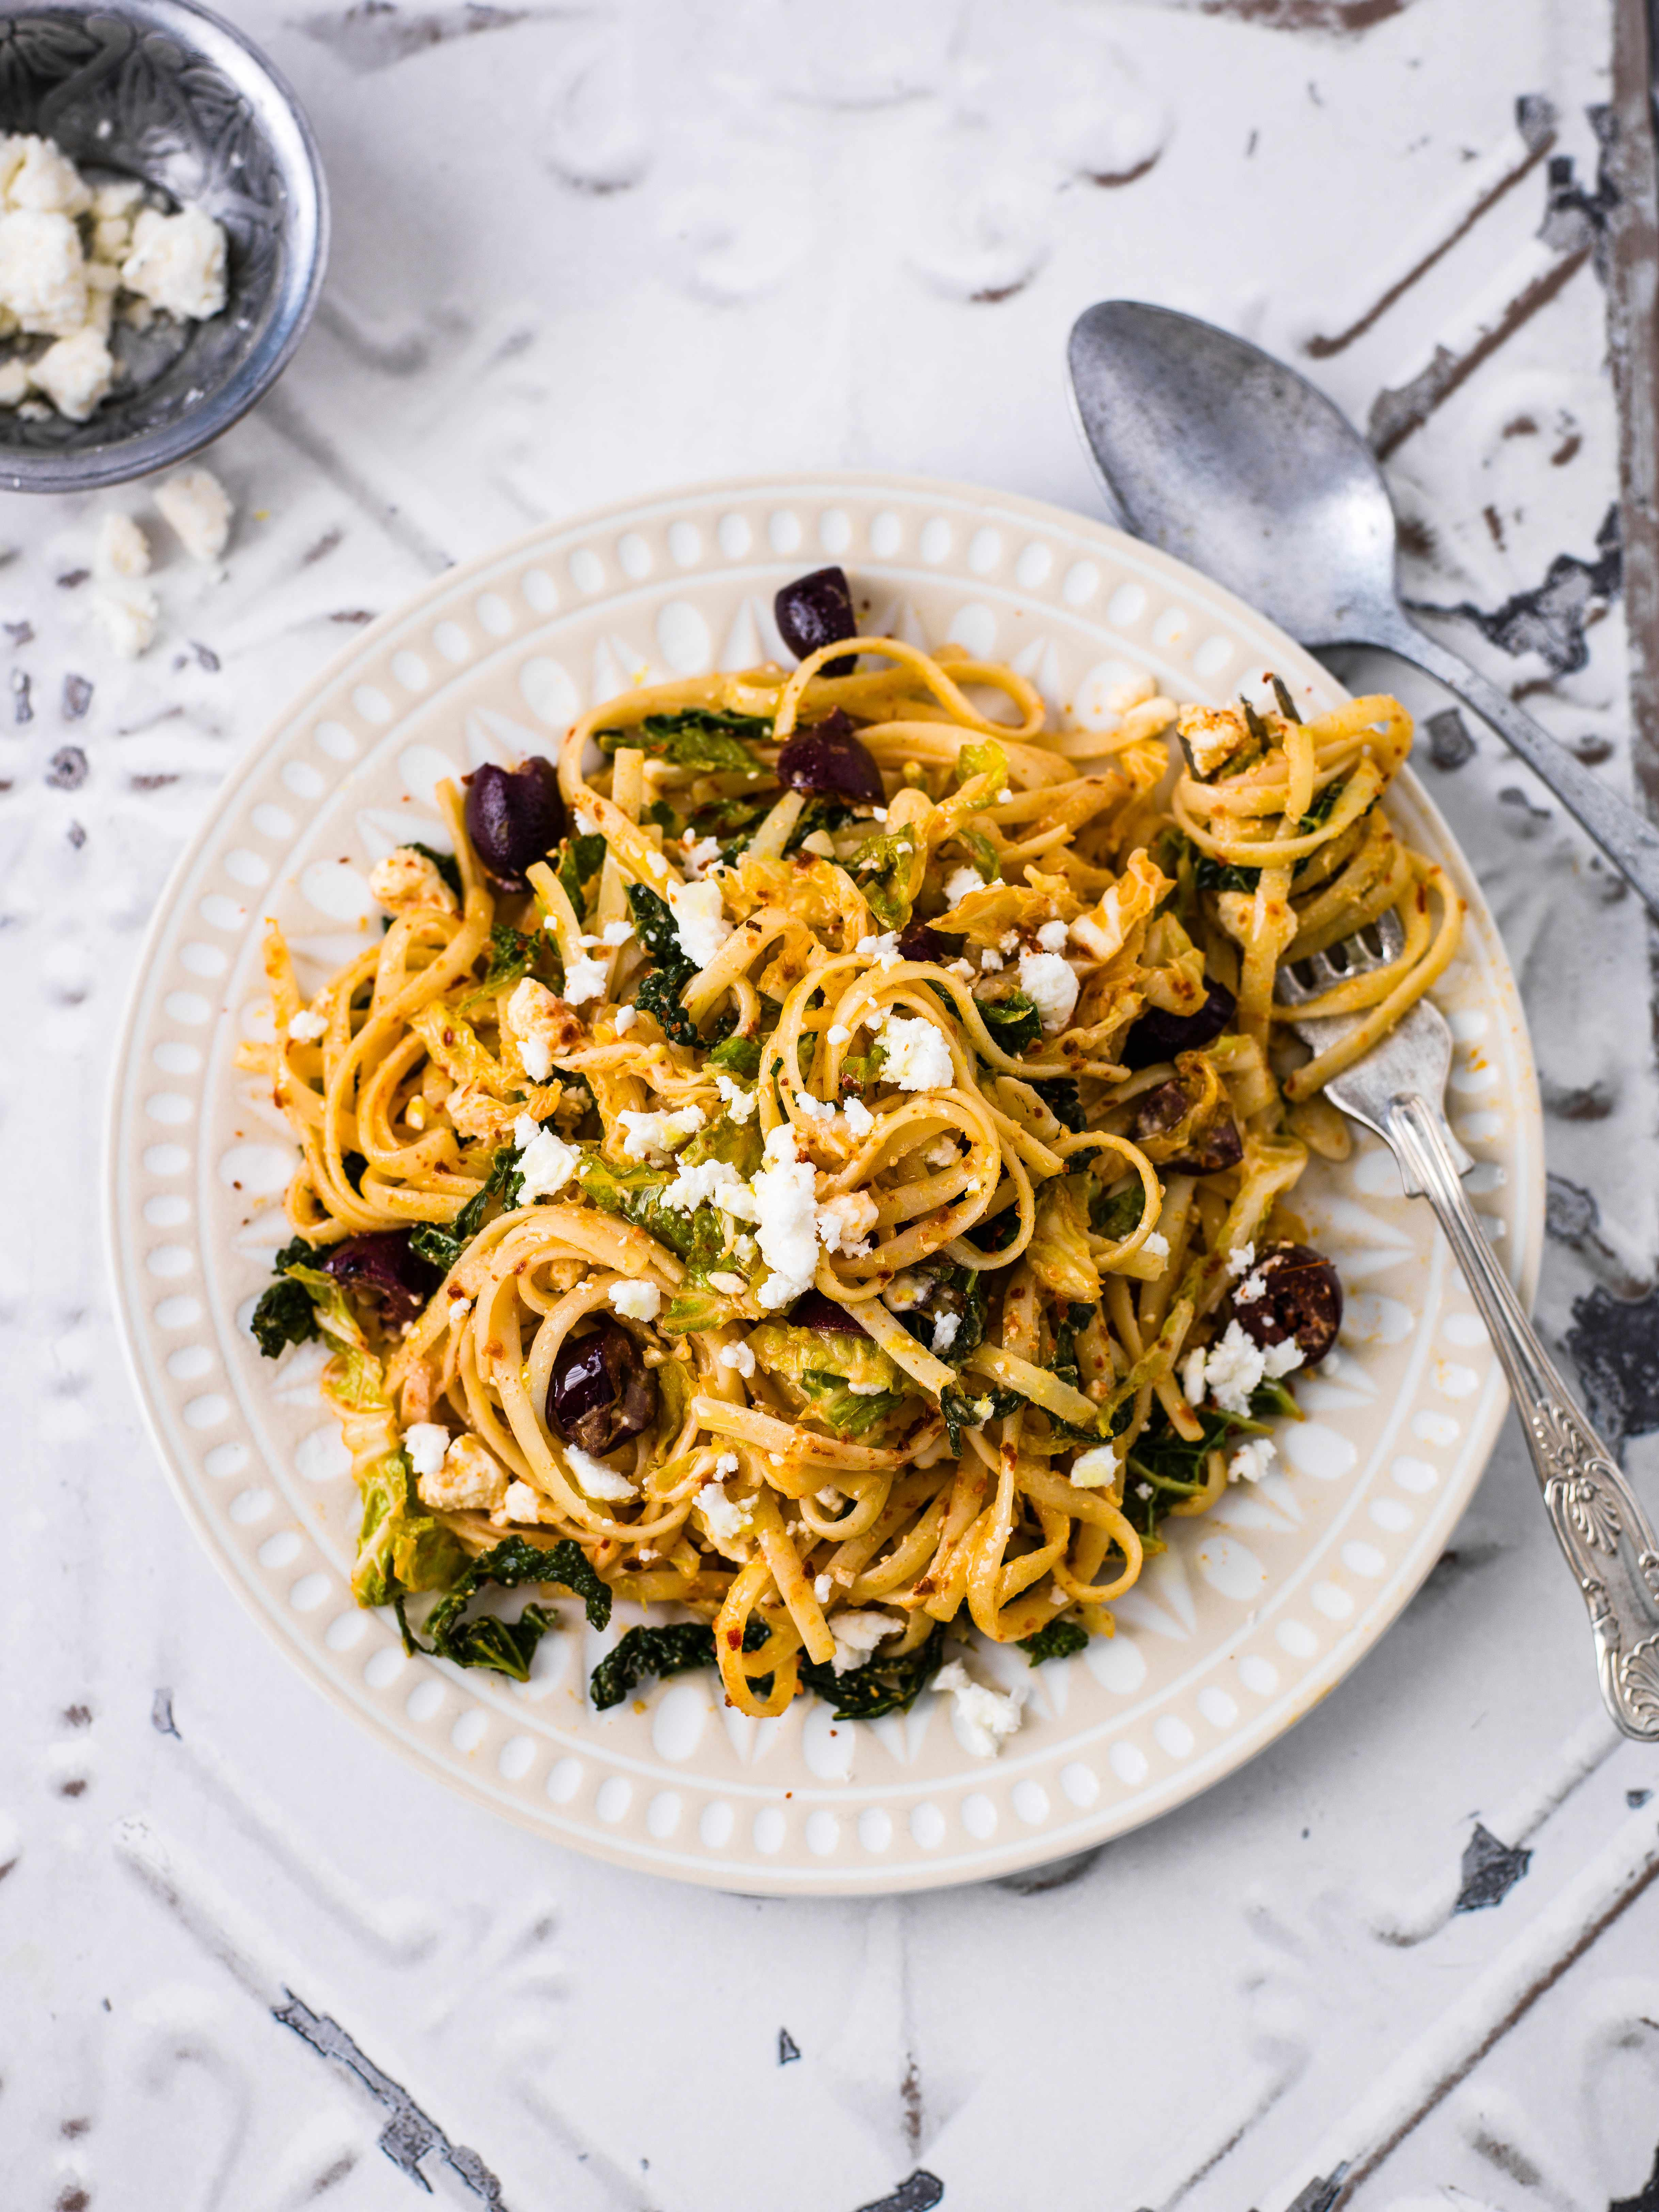 Linguine Recipe With Savoy Cabbage, Olives and Feta